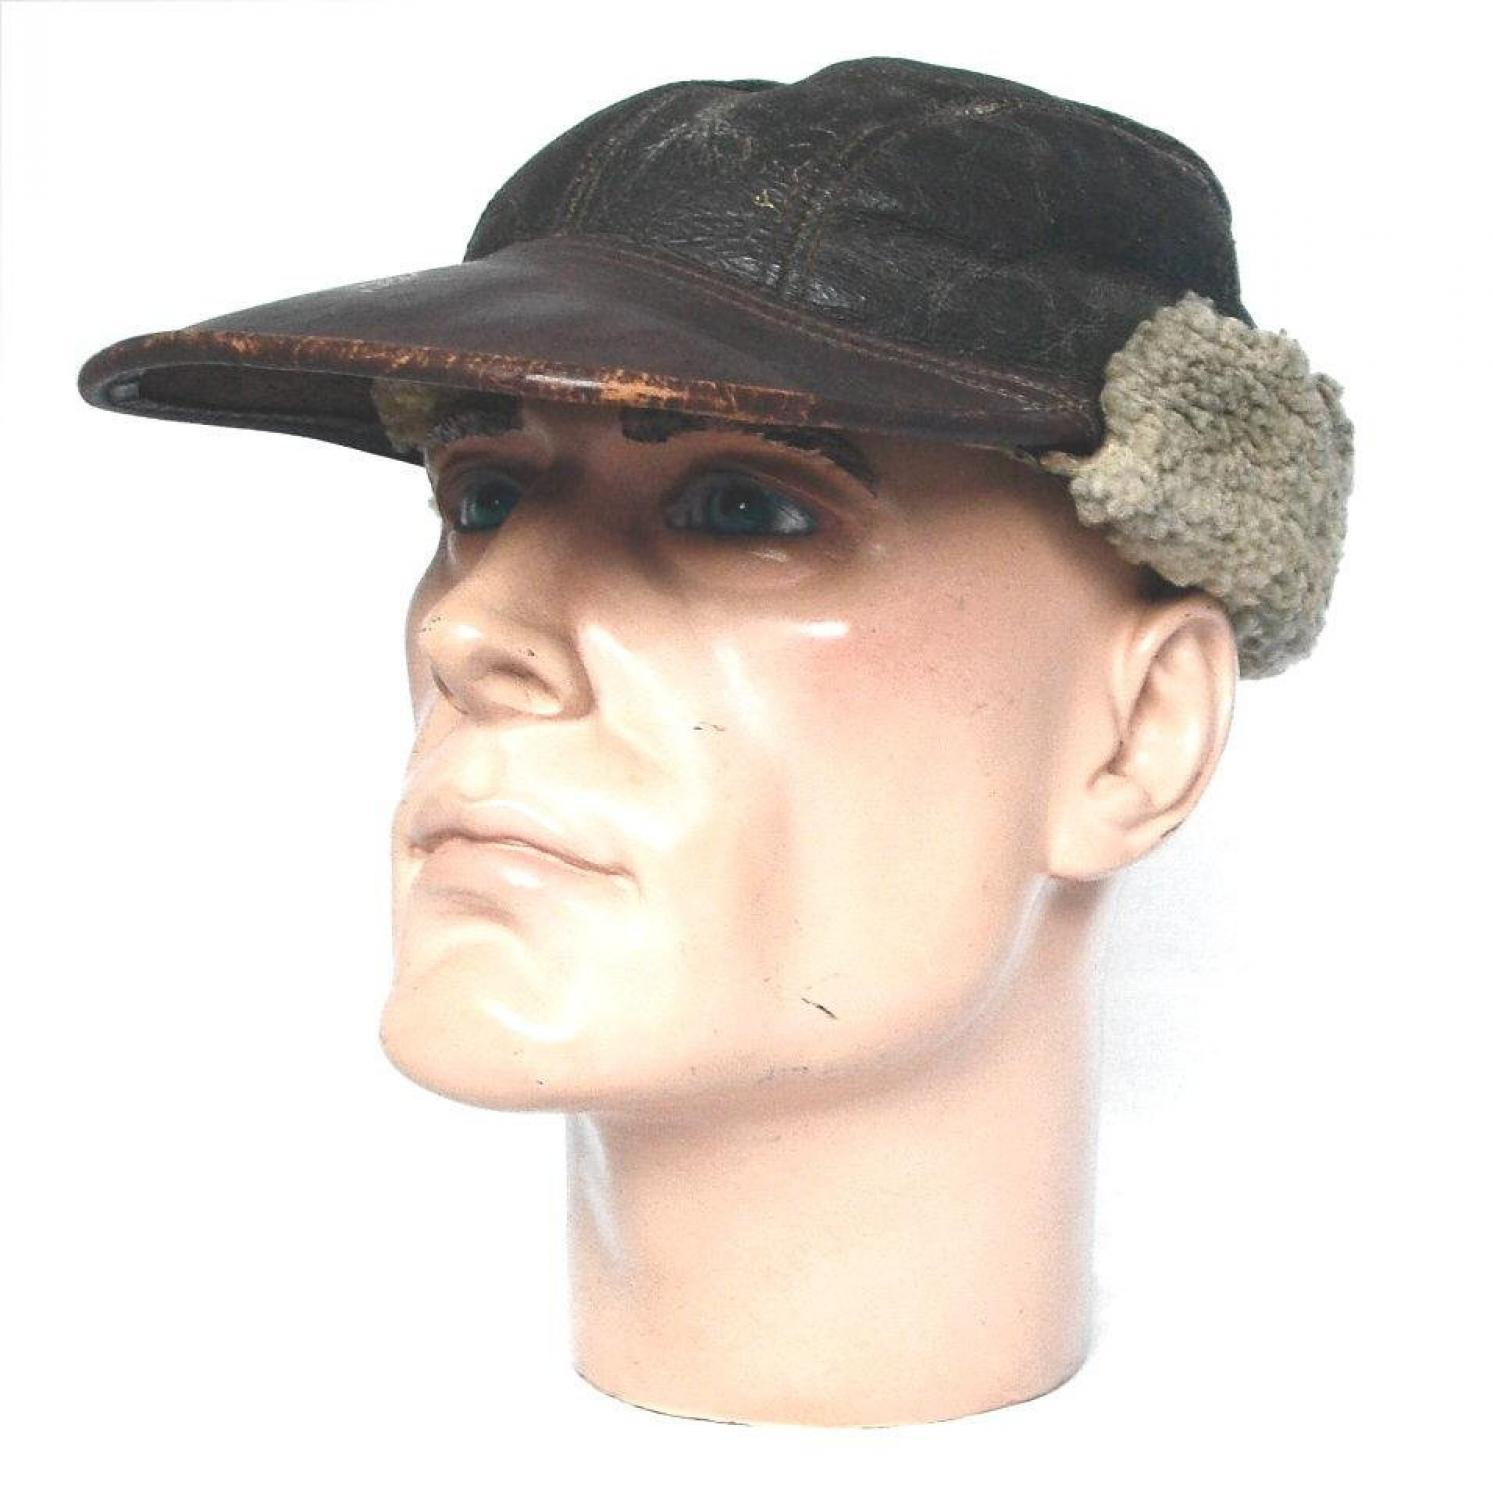 USAAF Winter Flying Cap, Type B-2